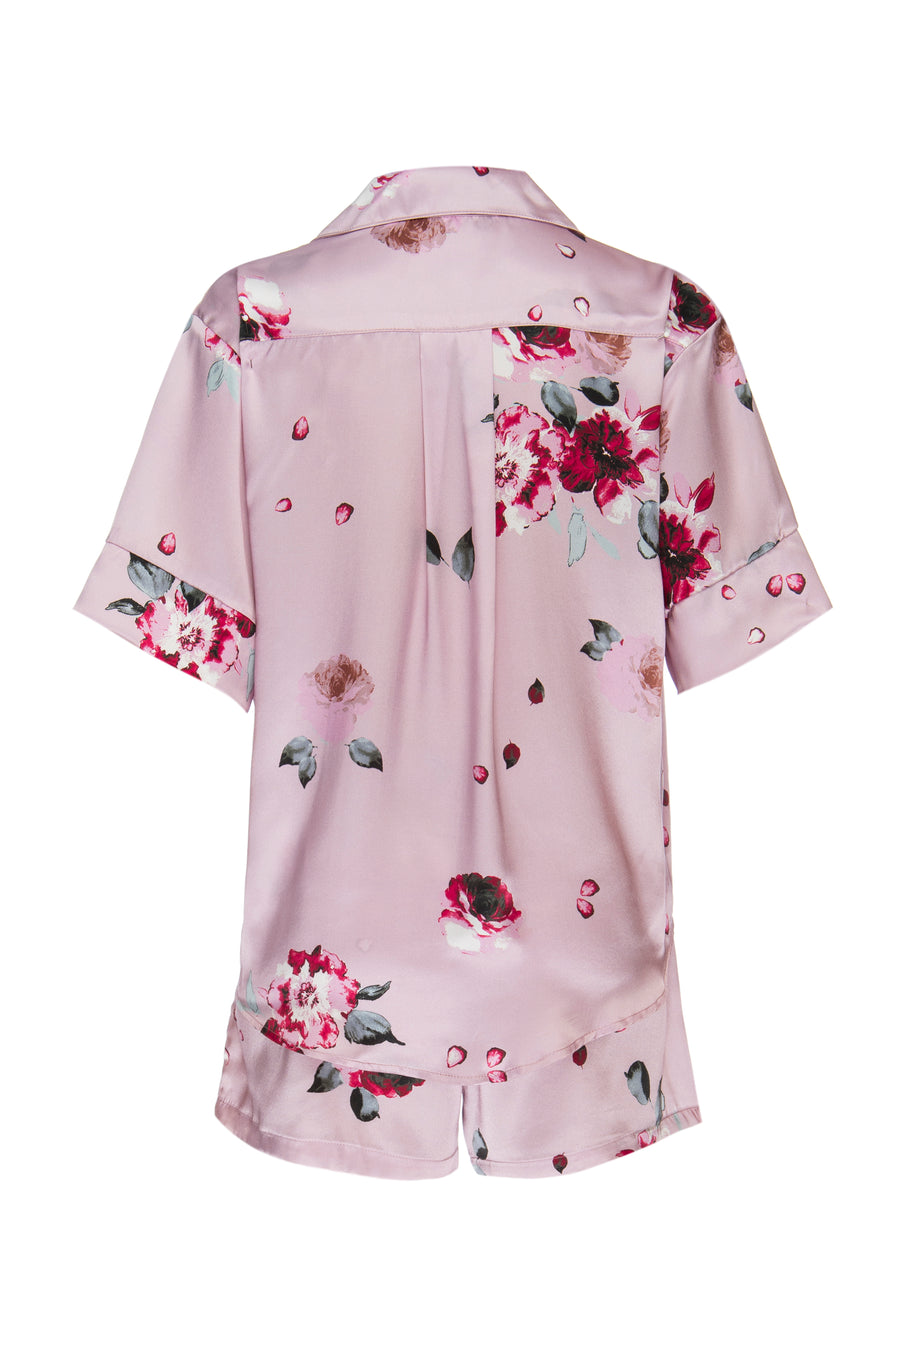 Silk Charmeuse Short Sleeved PJ Top + Short Set: Blush and Crimson Rose Print